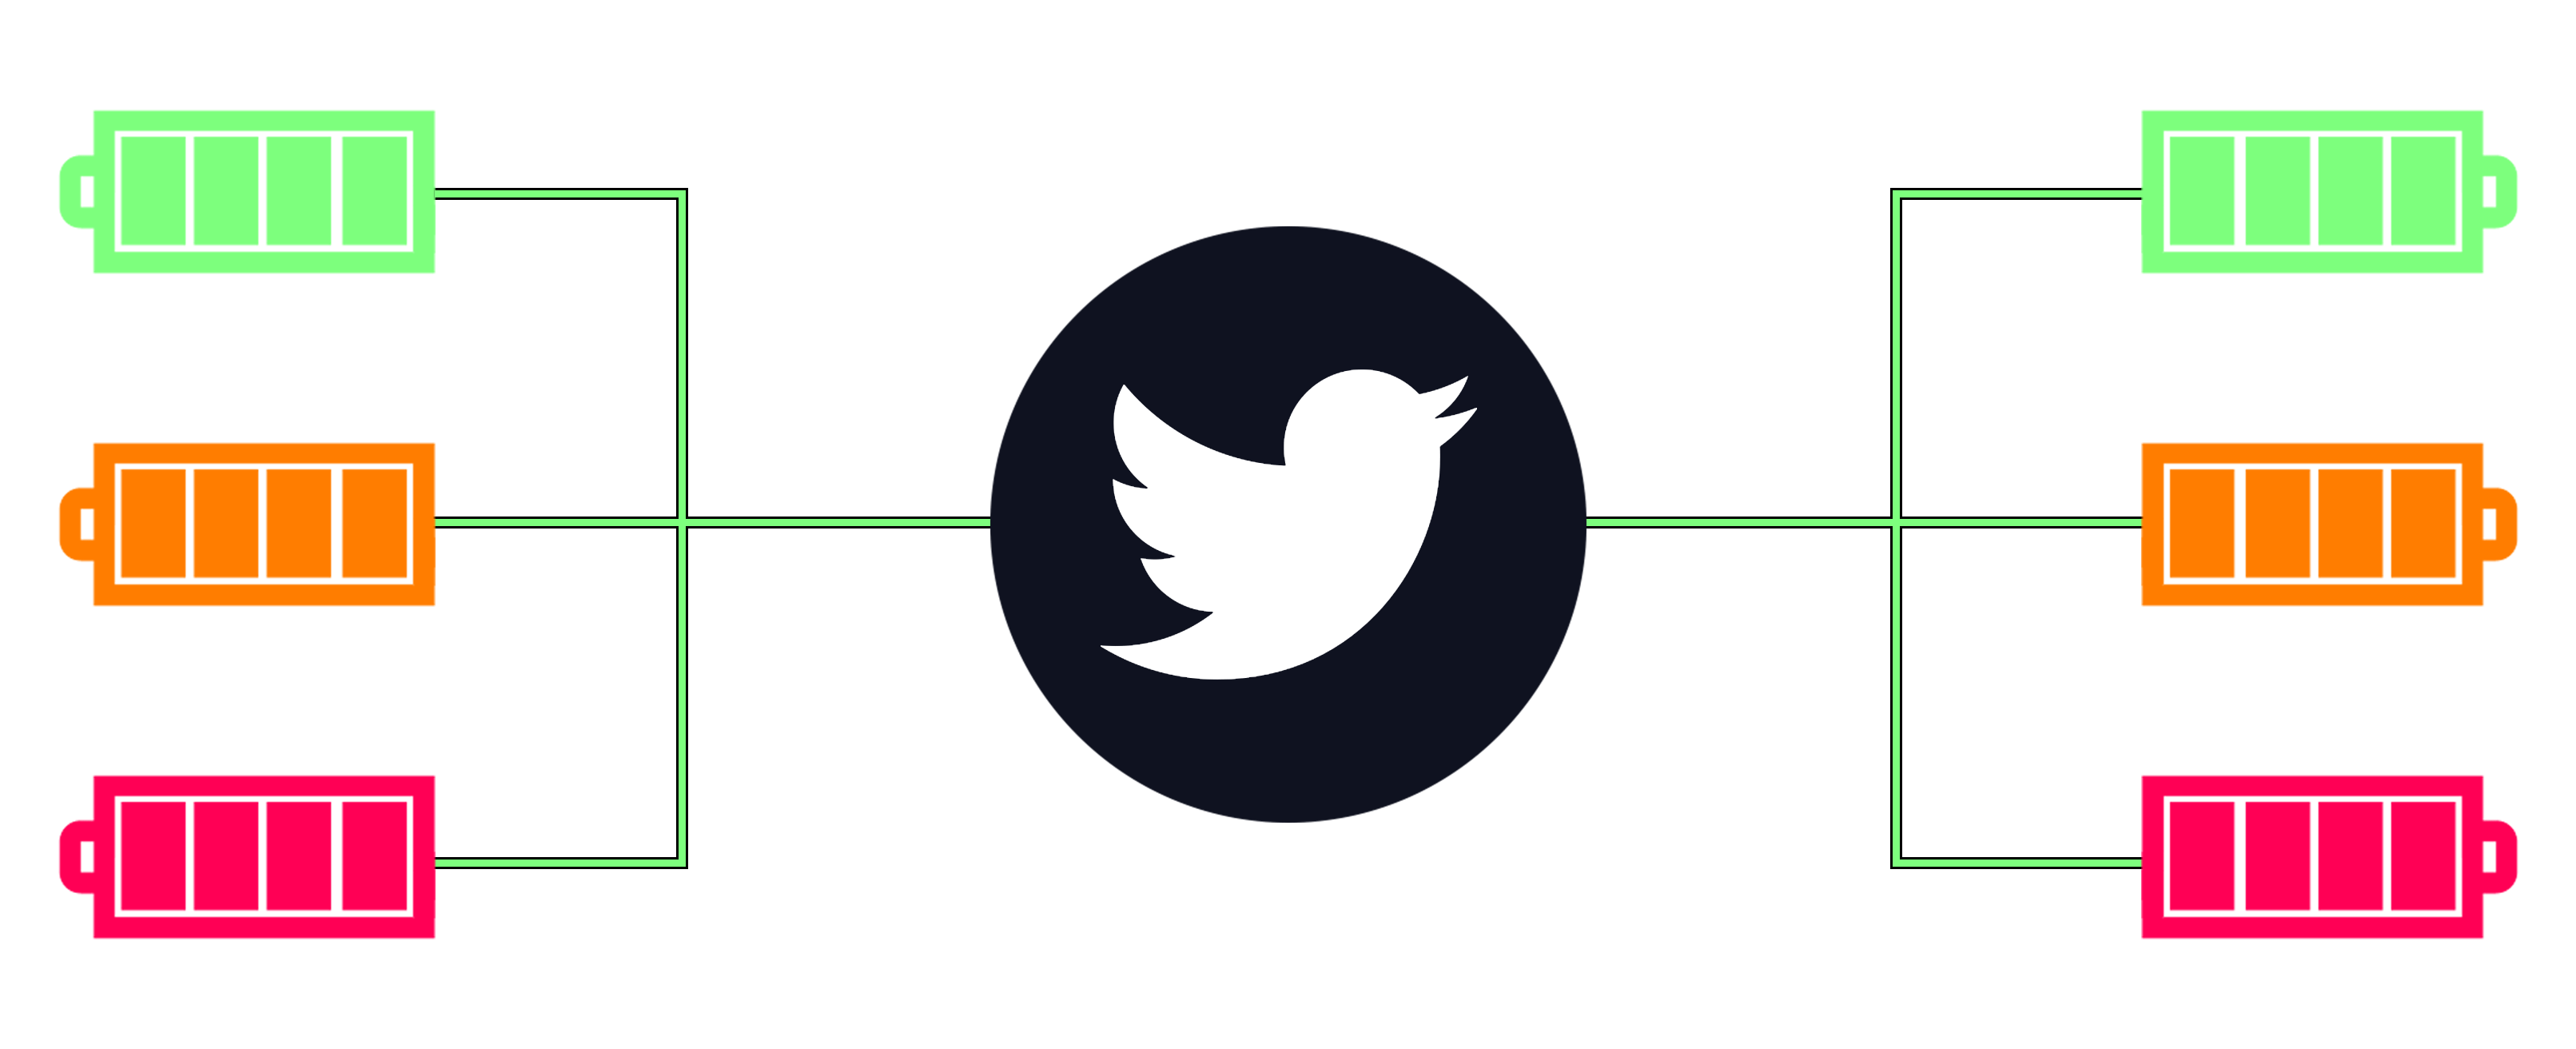 Twitter Ads: 10 Powerful Strategies To Supercharge Growth